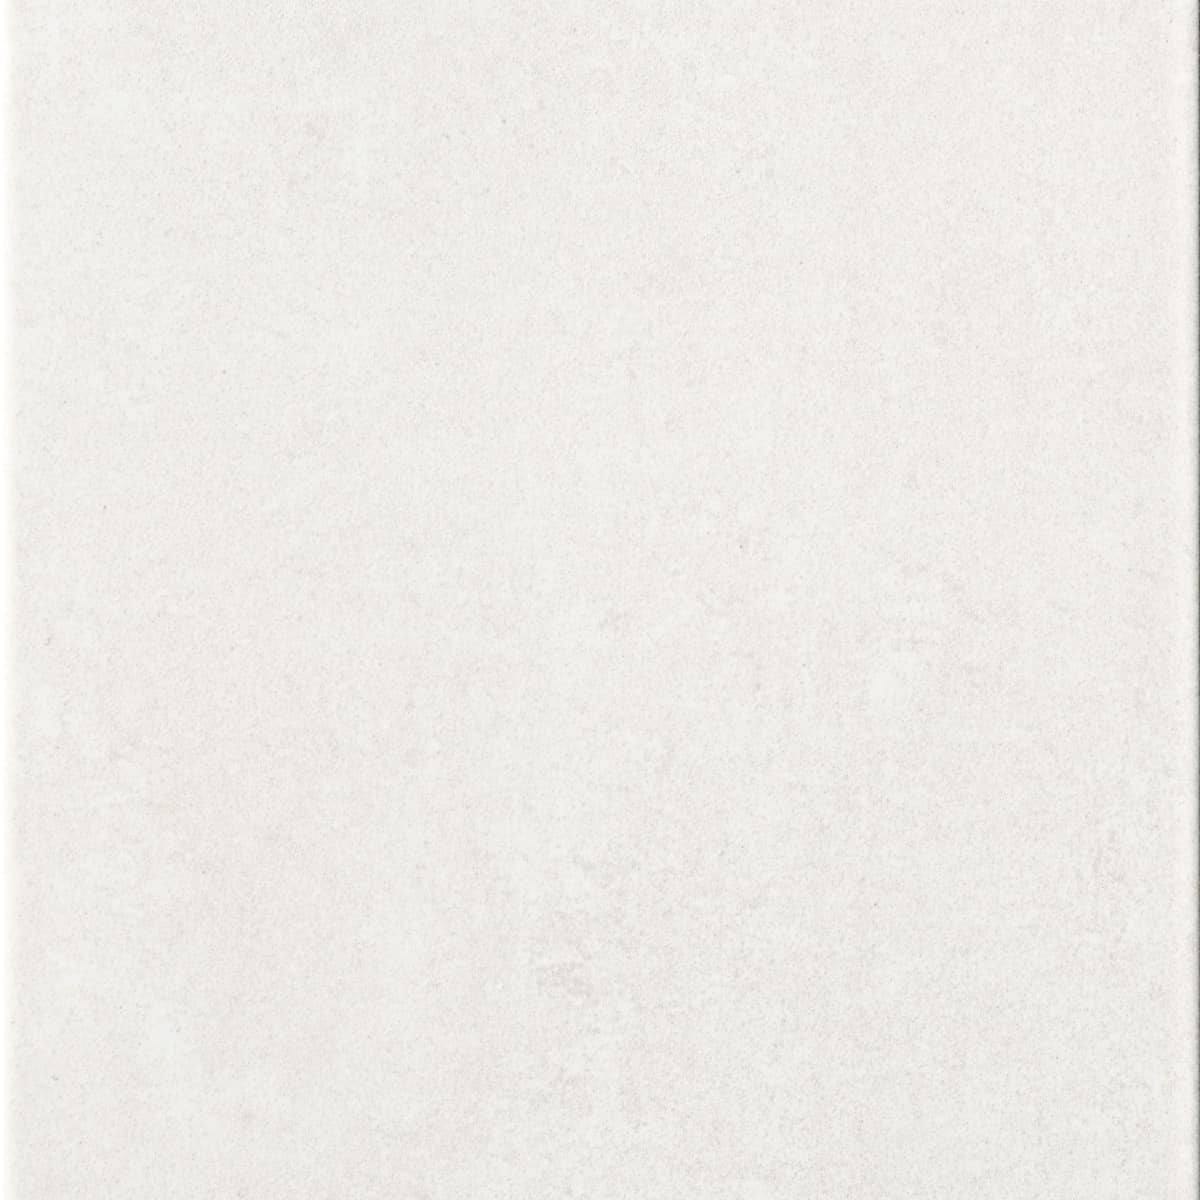 Cimenti Grey Matt Ceramic Wall Tile Pack Of 10 L 400mm: White Ceramic Tiles